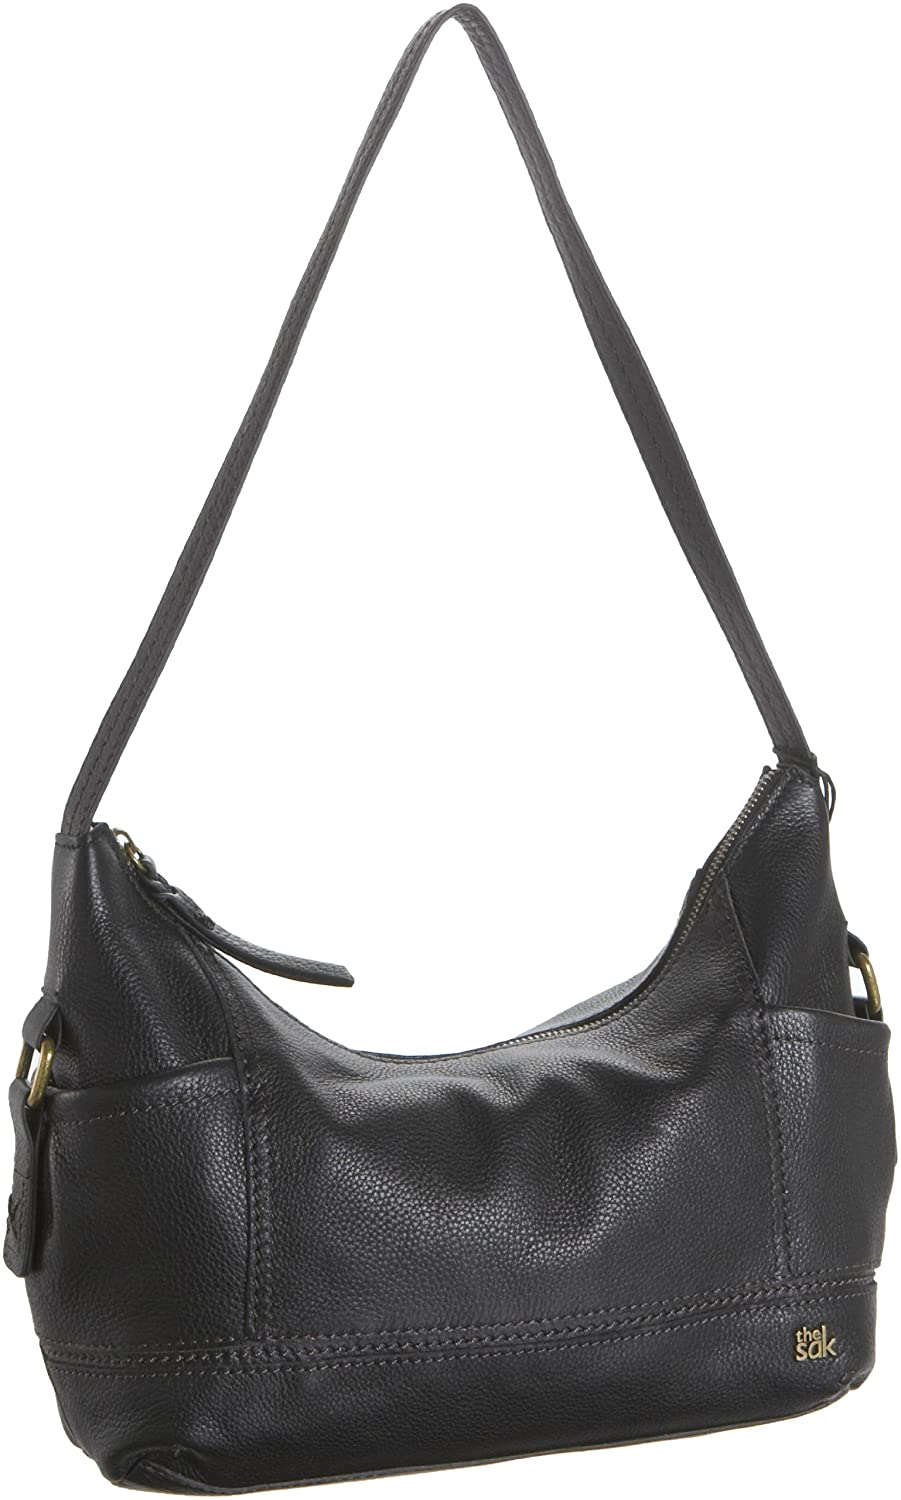 b62e39e7e04c Amazon.com  The Sak Kendra Hobo Shoulder Bag